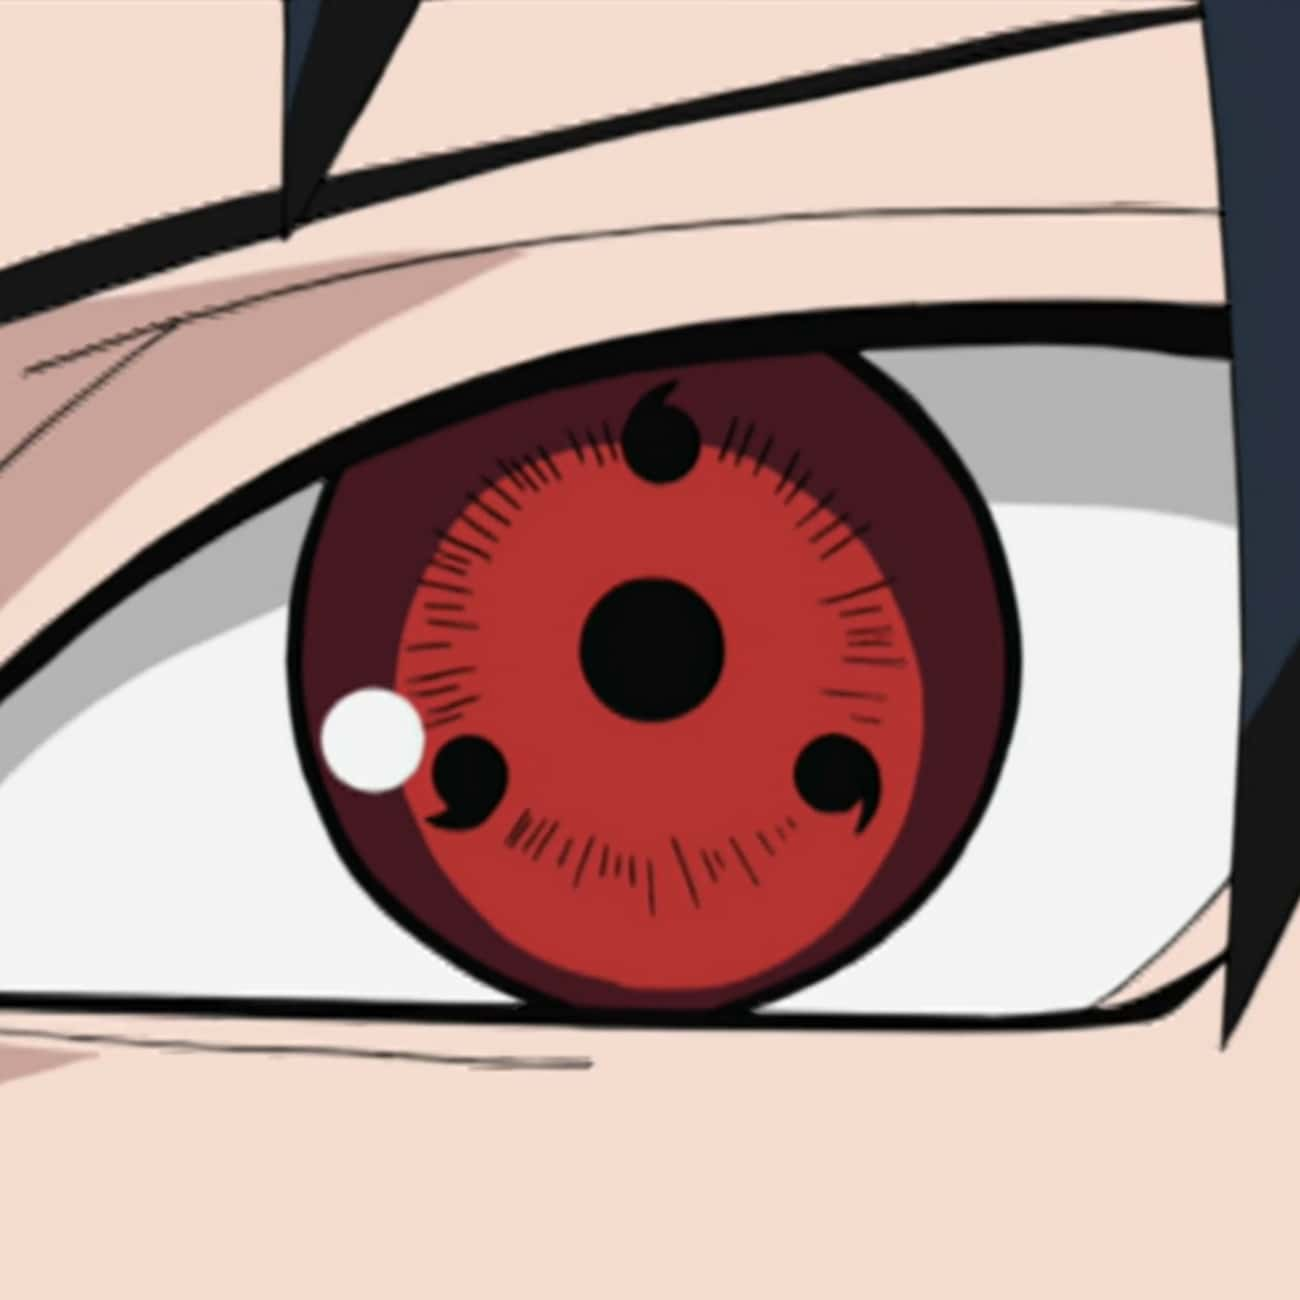 Sharingan - Naruto is listed (or ranked) 2 on the list The 25+ Anime Superpowers You Want Most